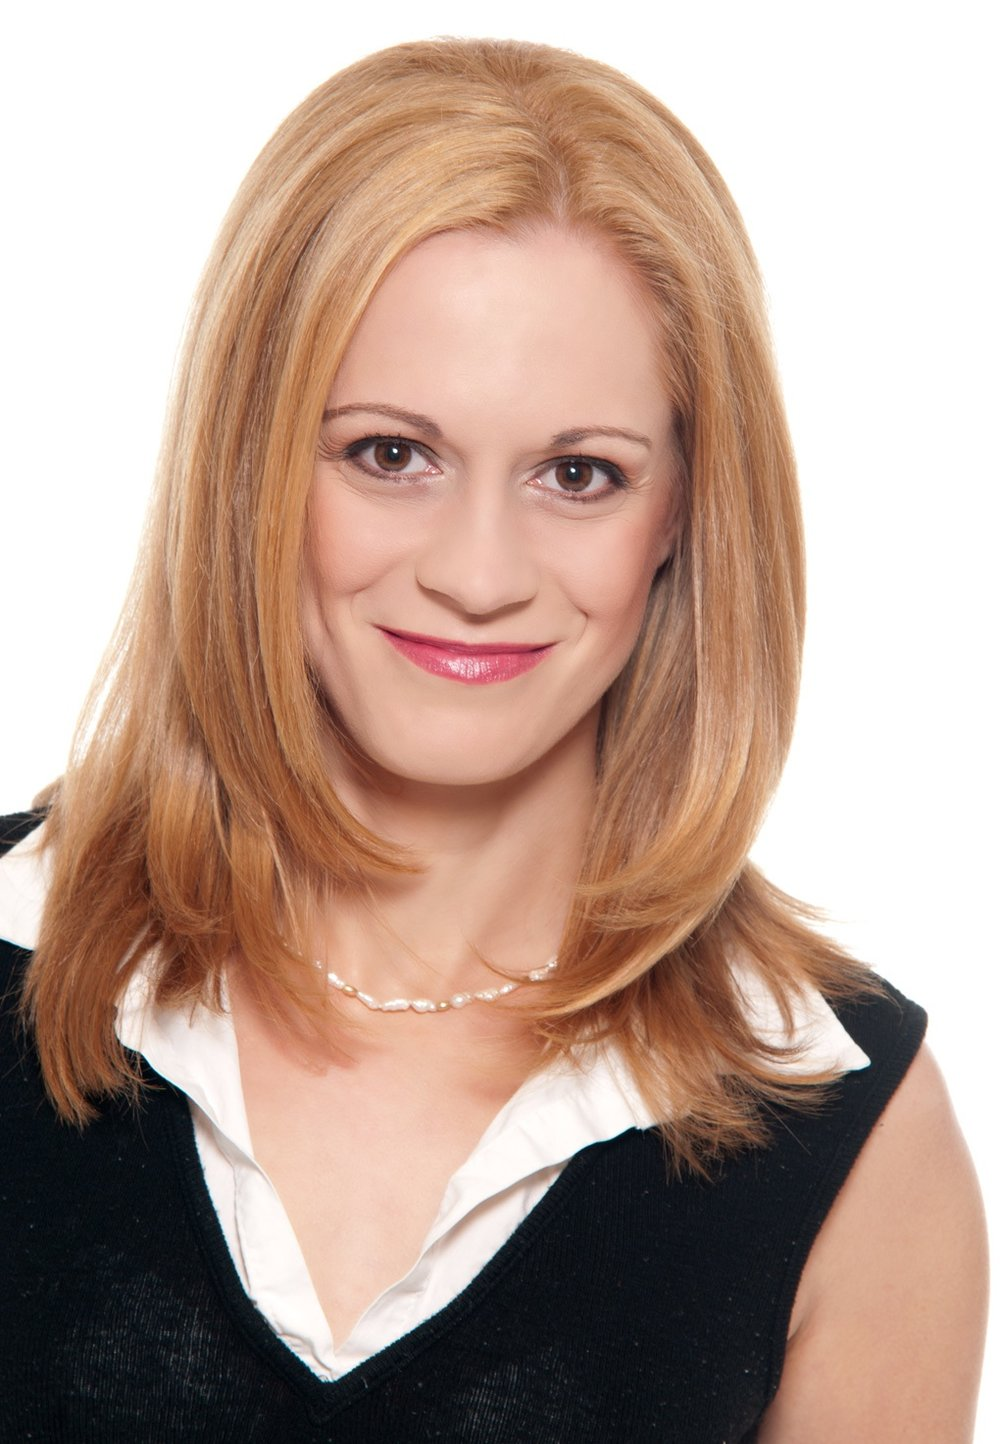 Dr. Holly Parker Head Shot 1.jpg